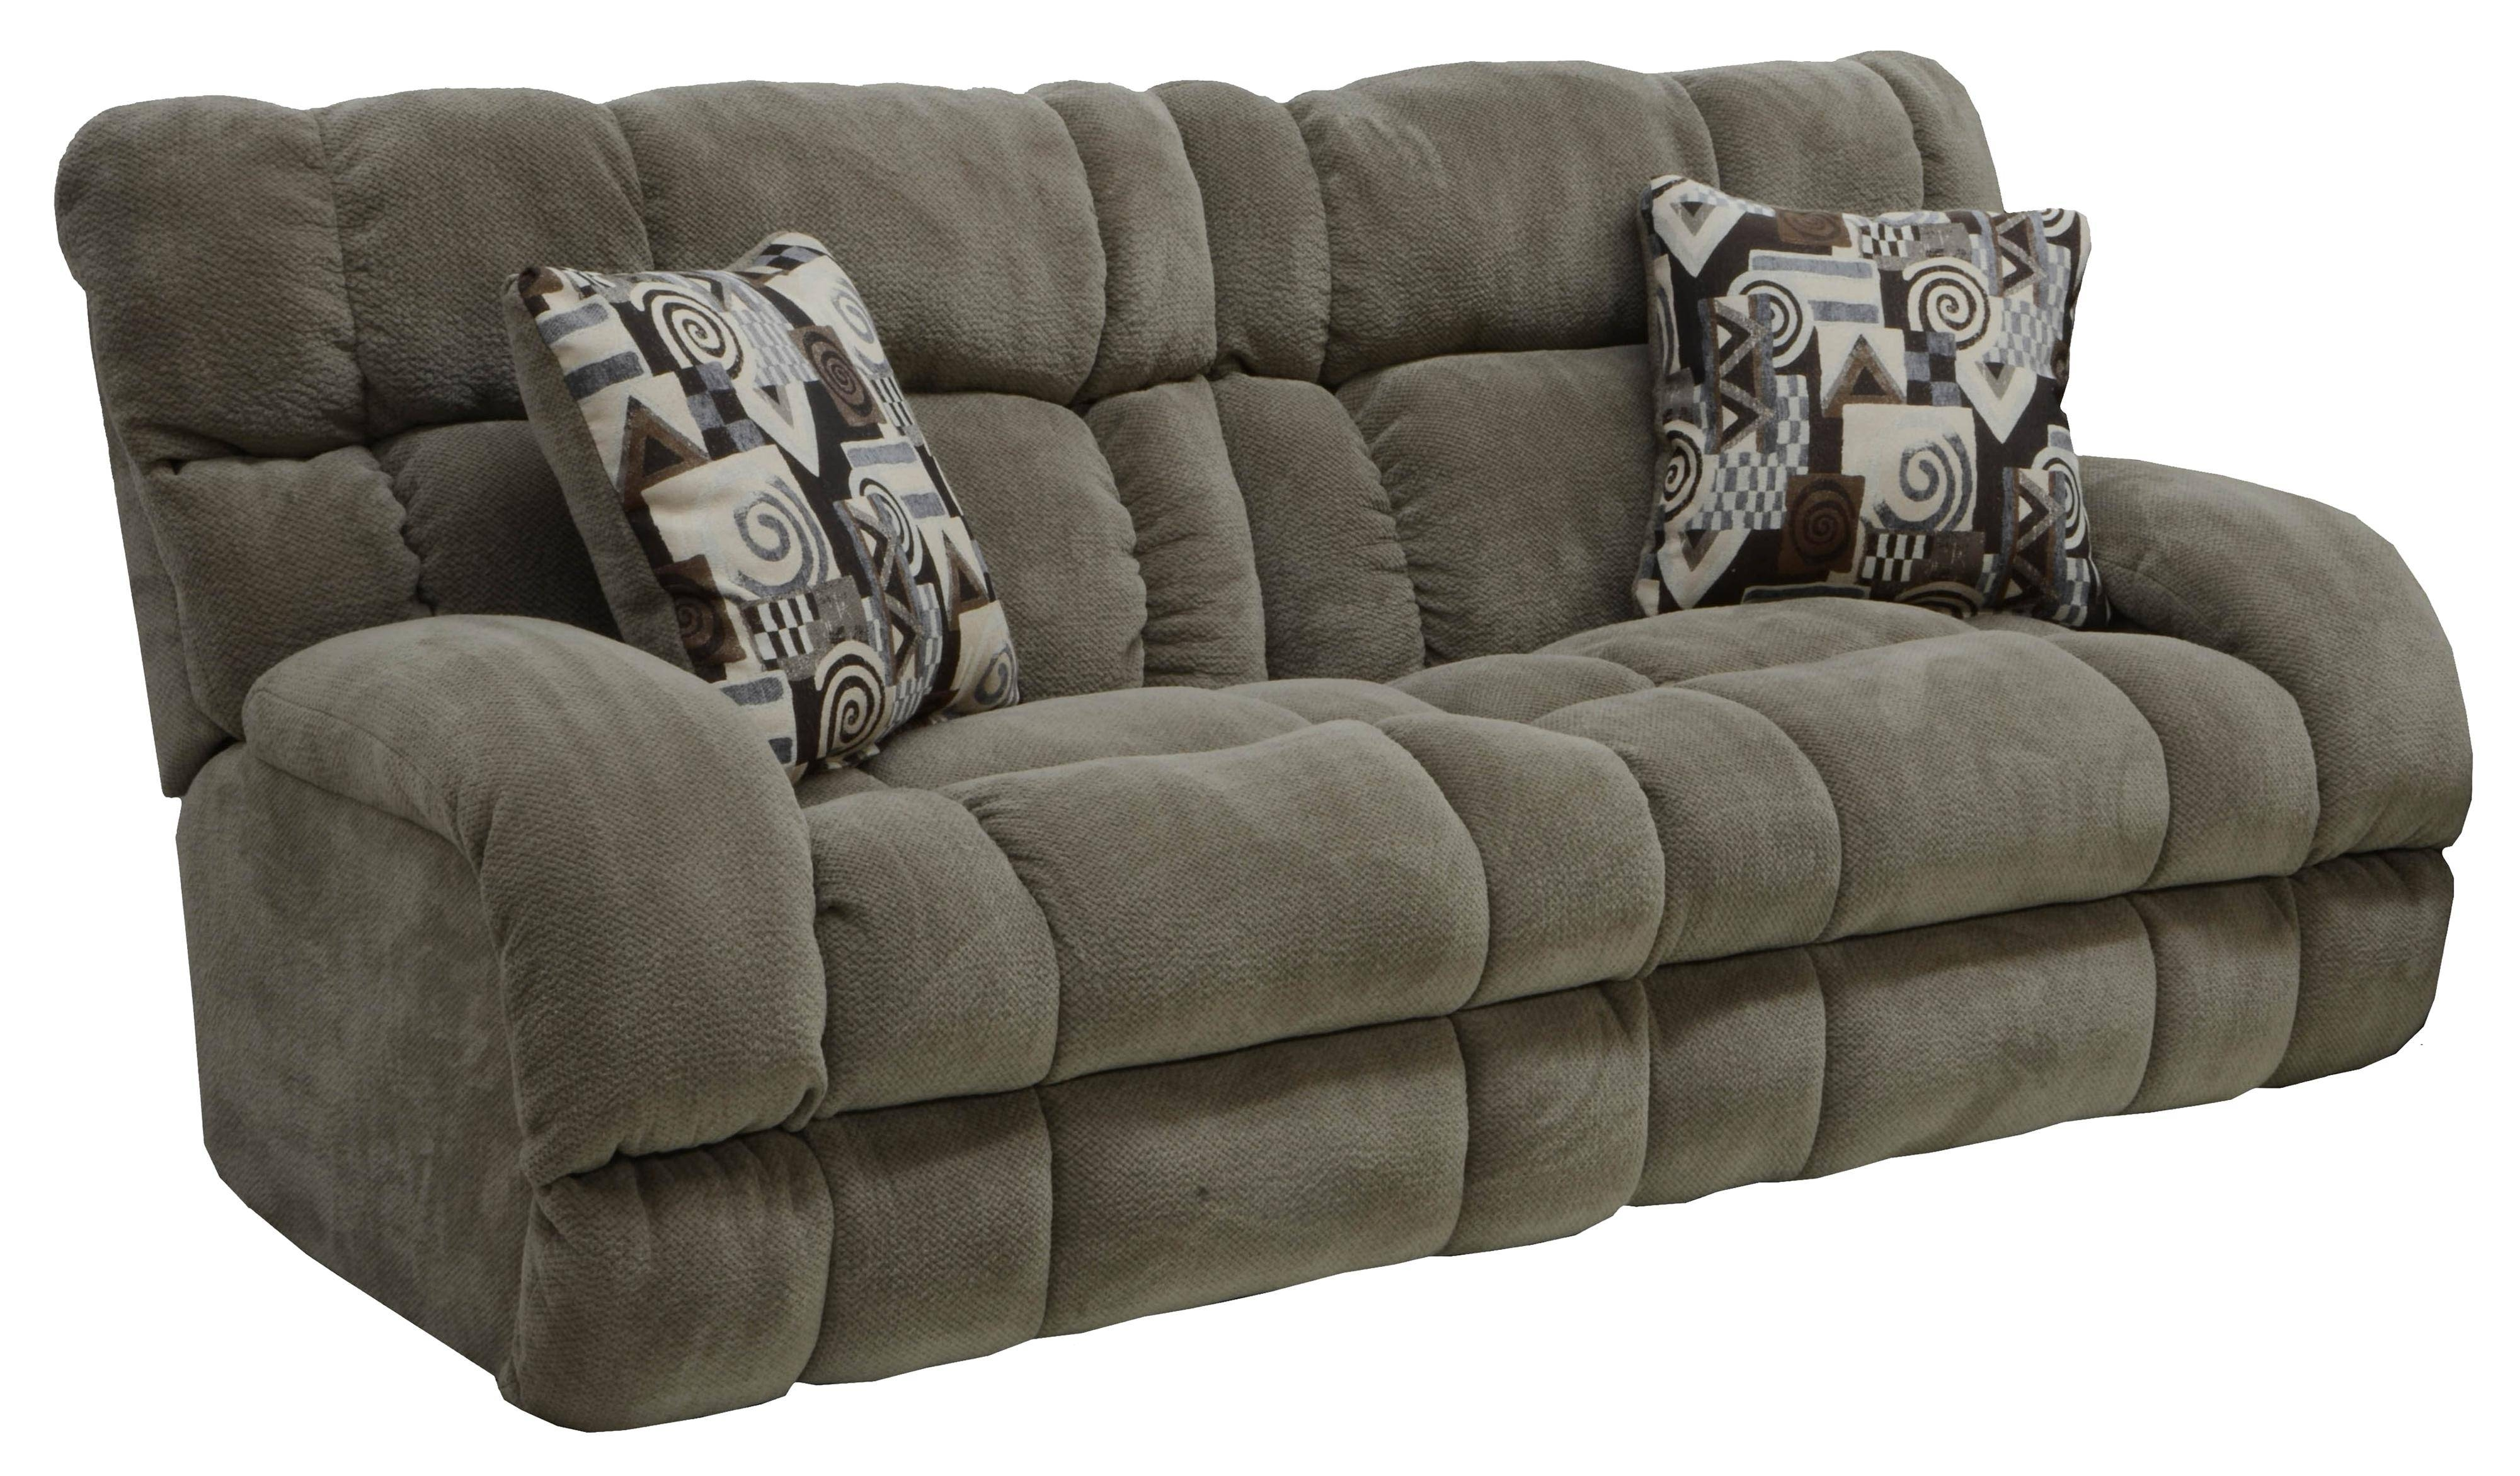 Power Lay Flat Reclining Sofa With Wide Seatscatnapper | Wolf For Catnapper Recliner Sofas (View 8 of 15)